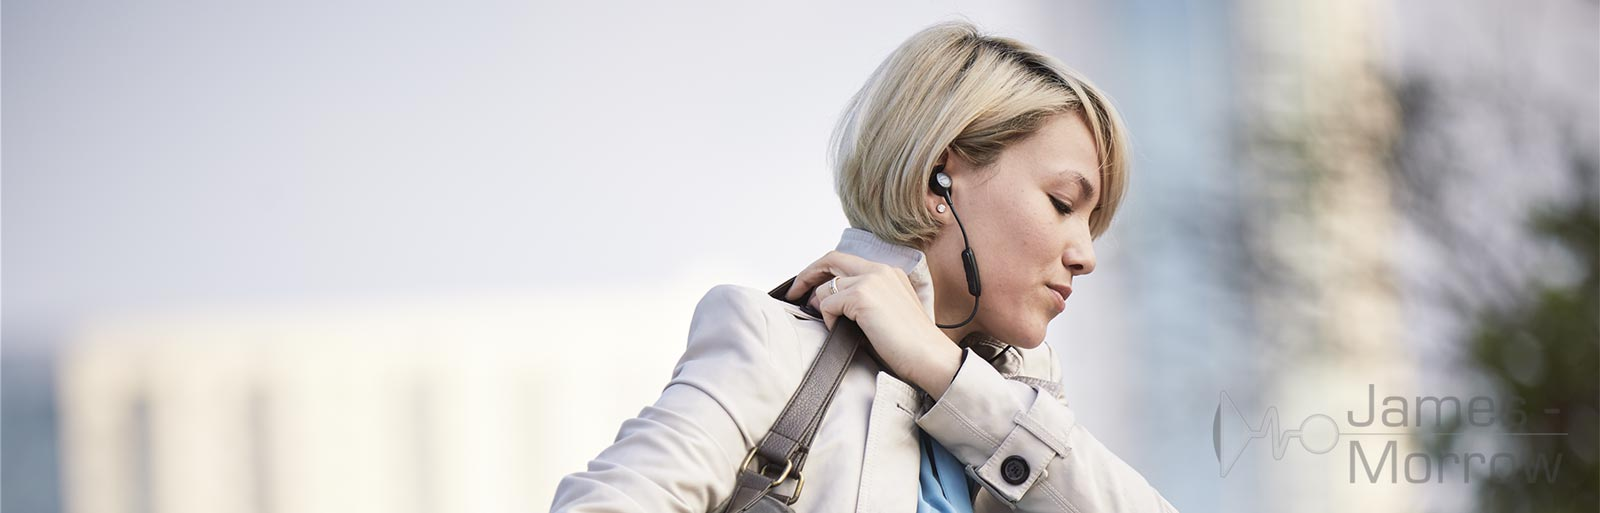 Bose QC30 being worn by woman lifestyle banner image